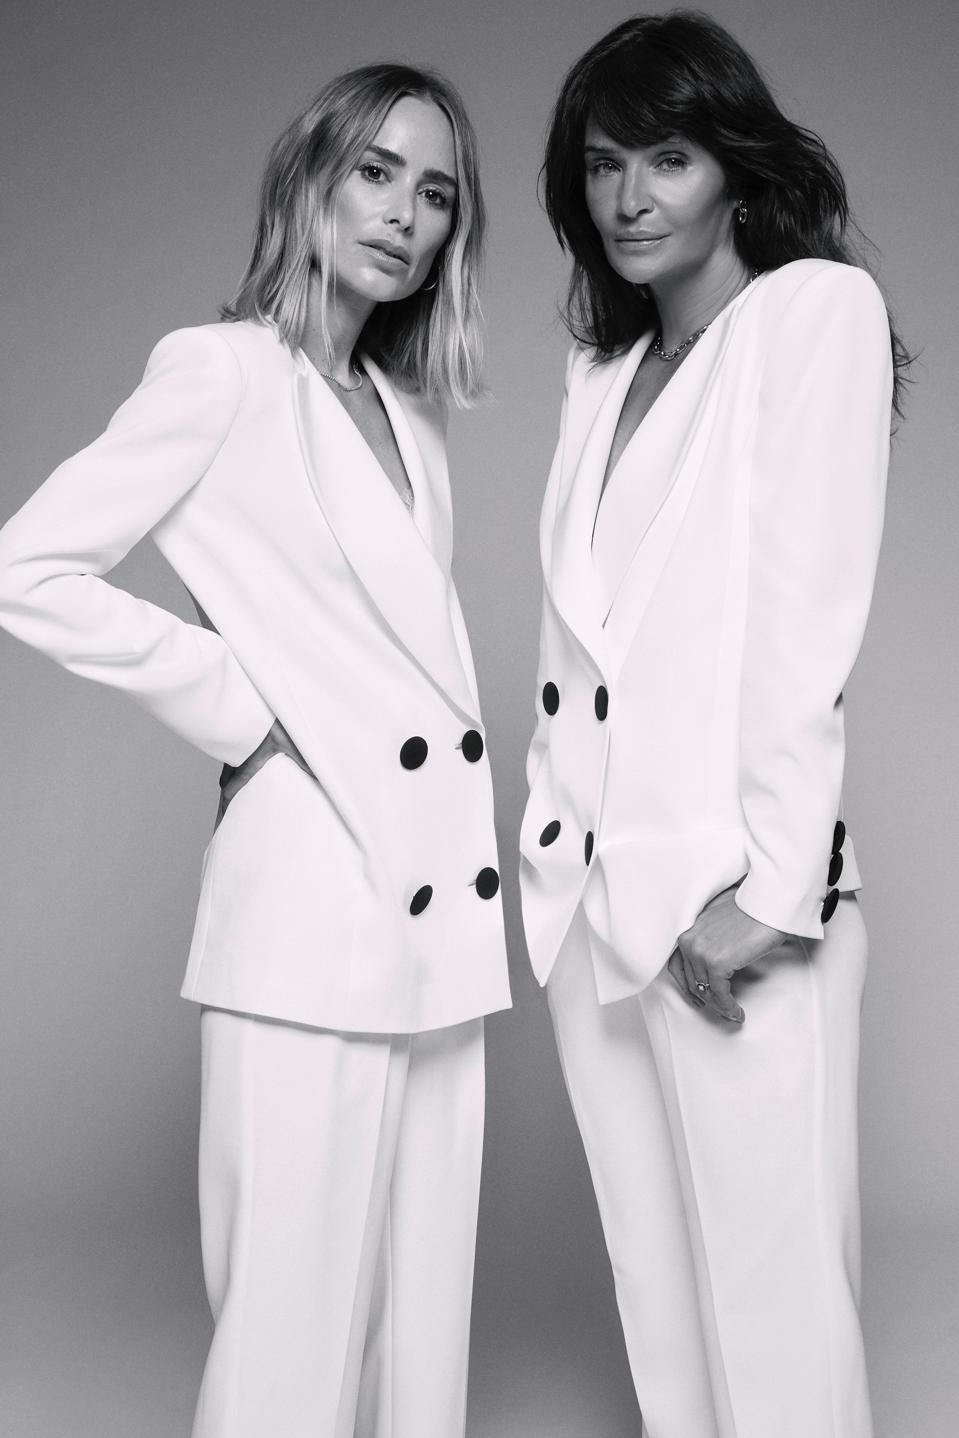 Anine Bing and Helena Christensen model a white suit from their holiday collection.